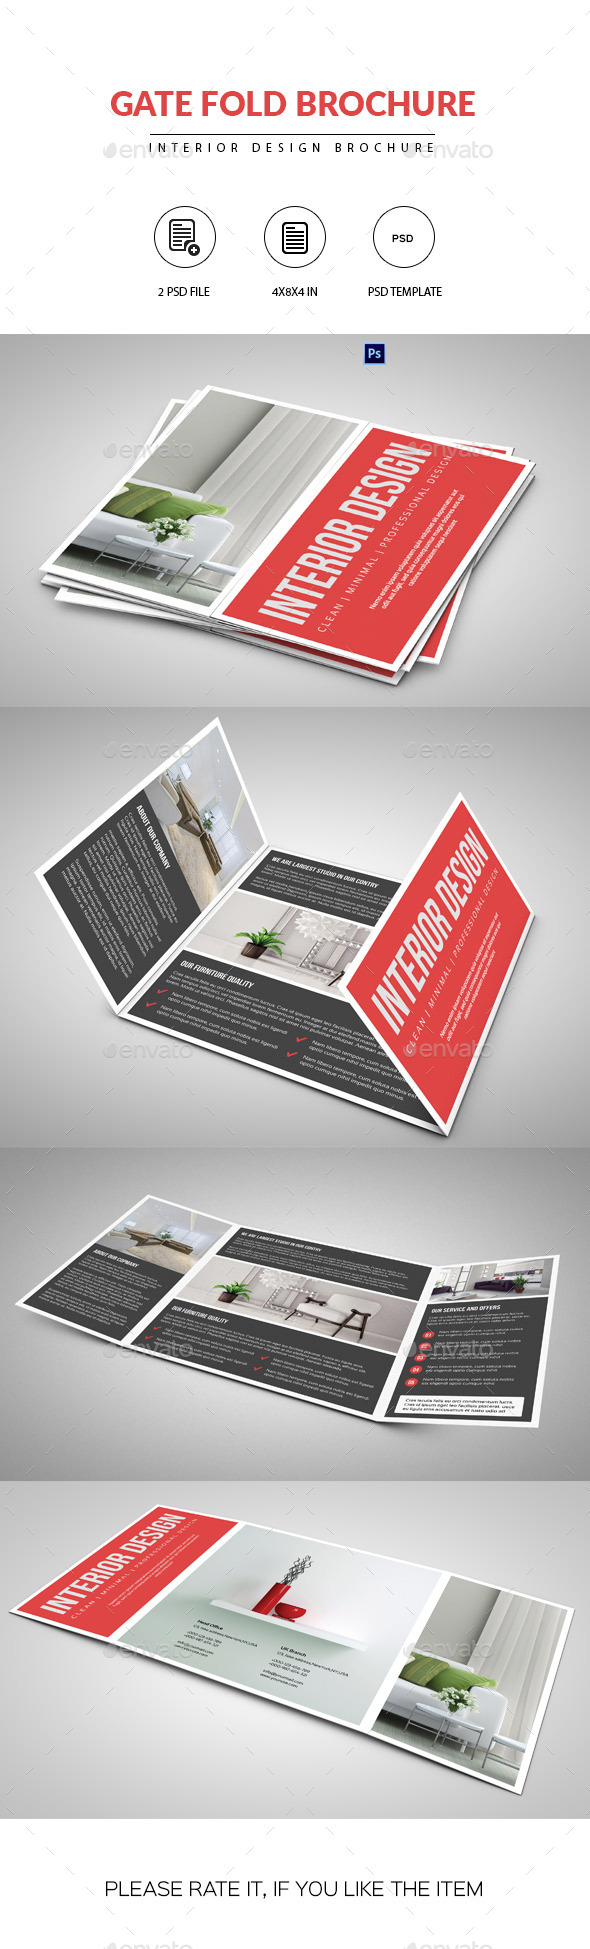 gate fold brochure template indesign - gate fold brochure psd mockup download